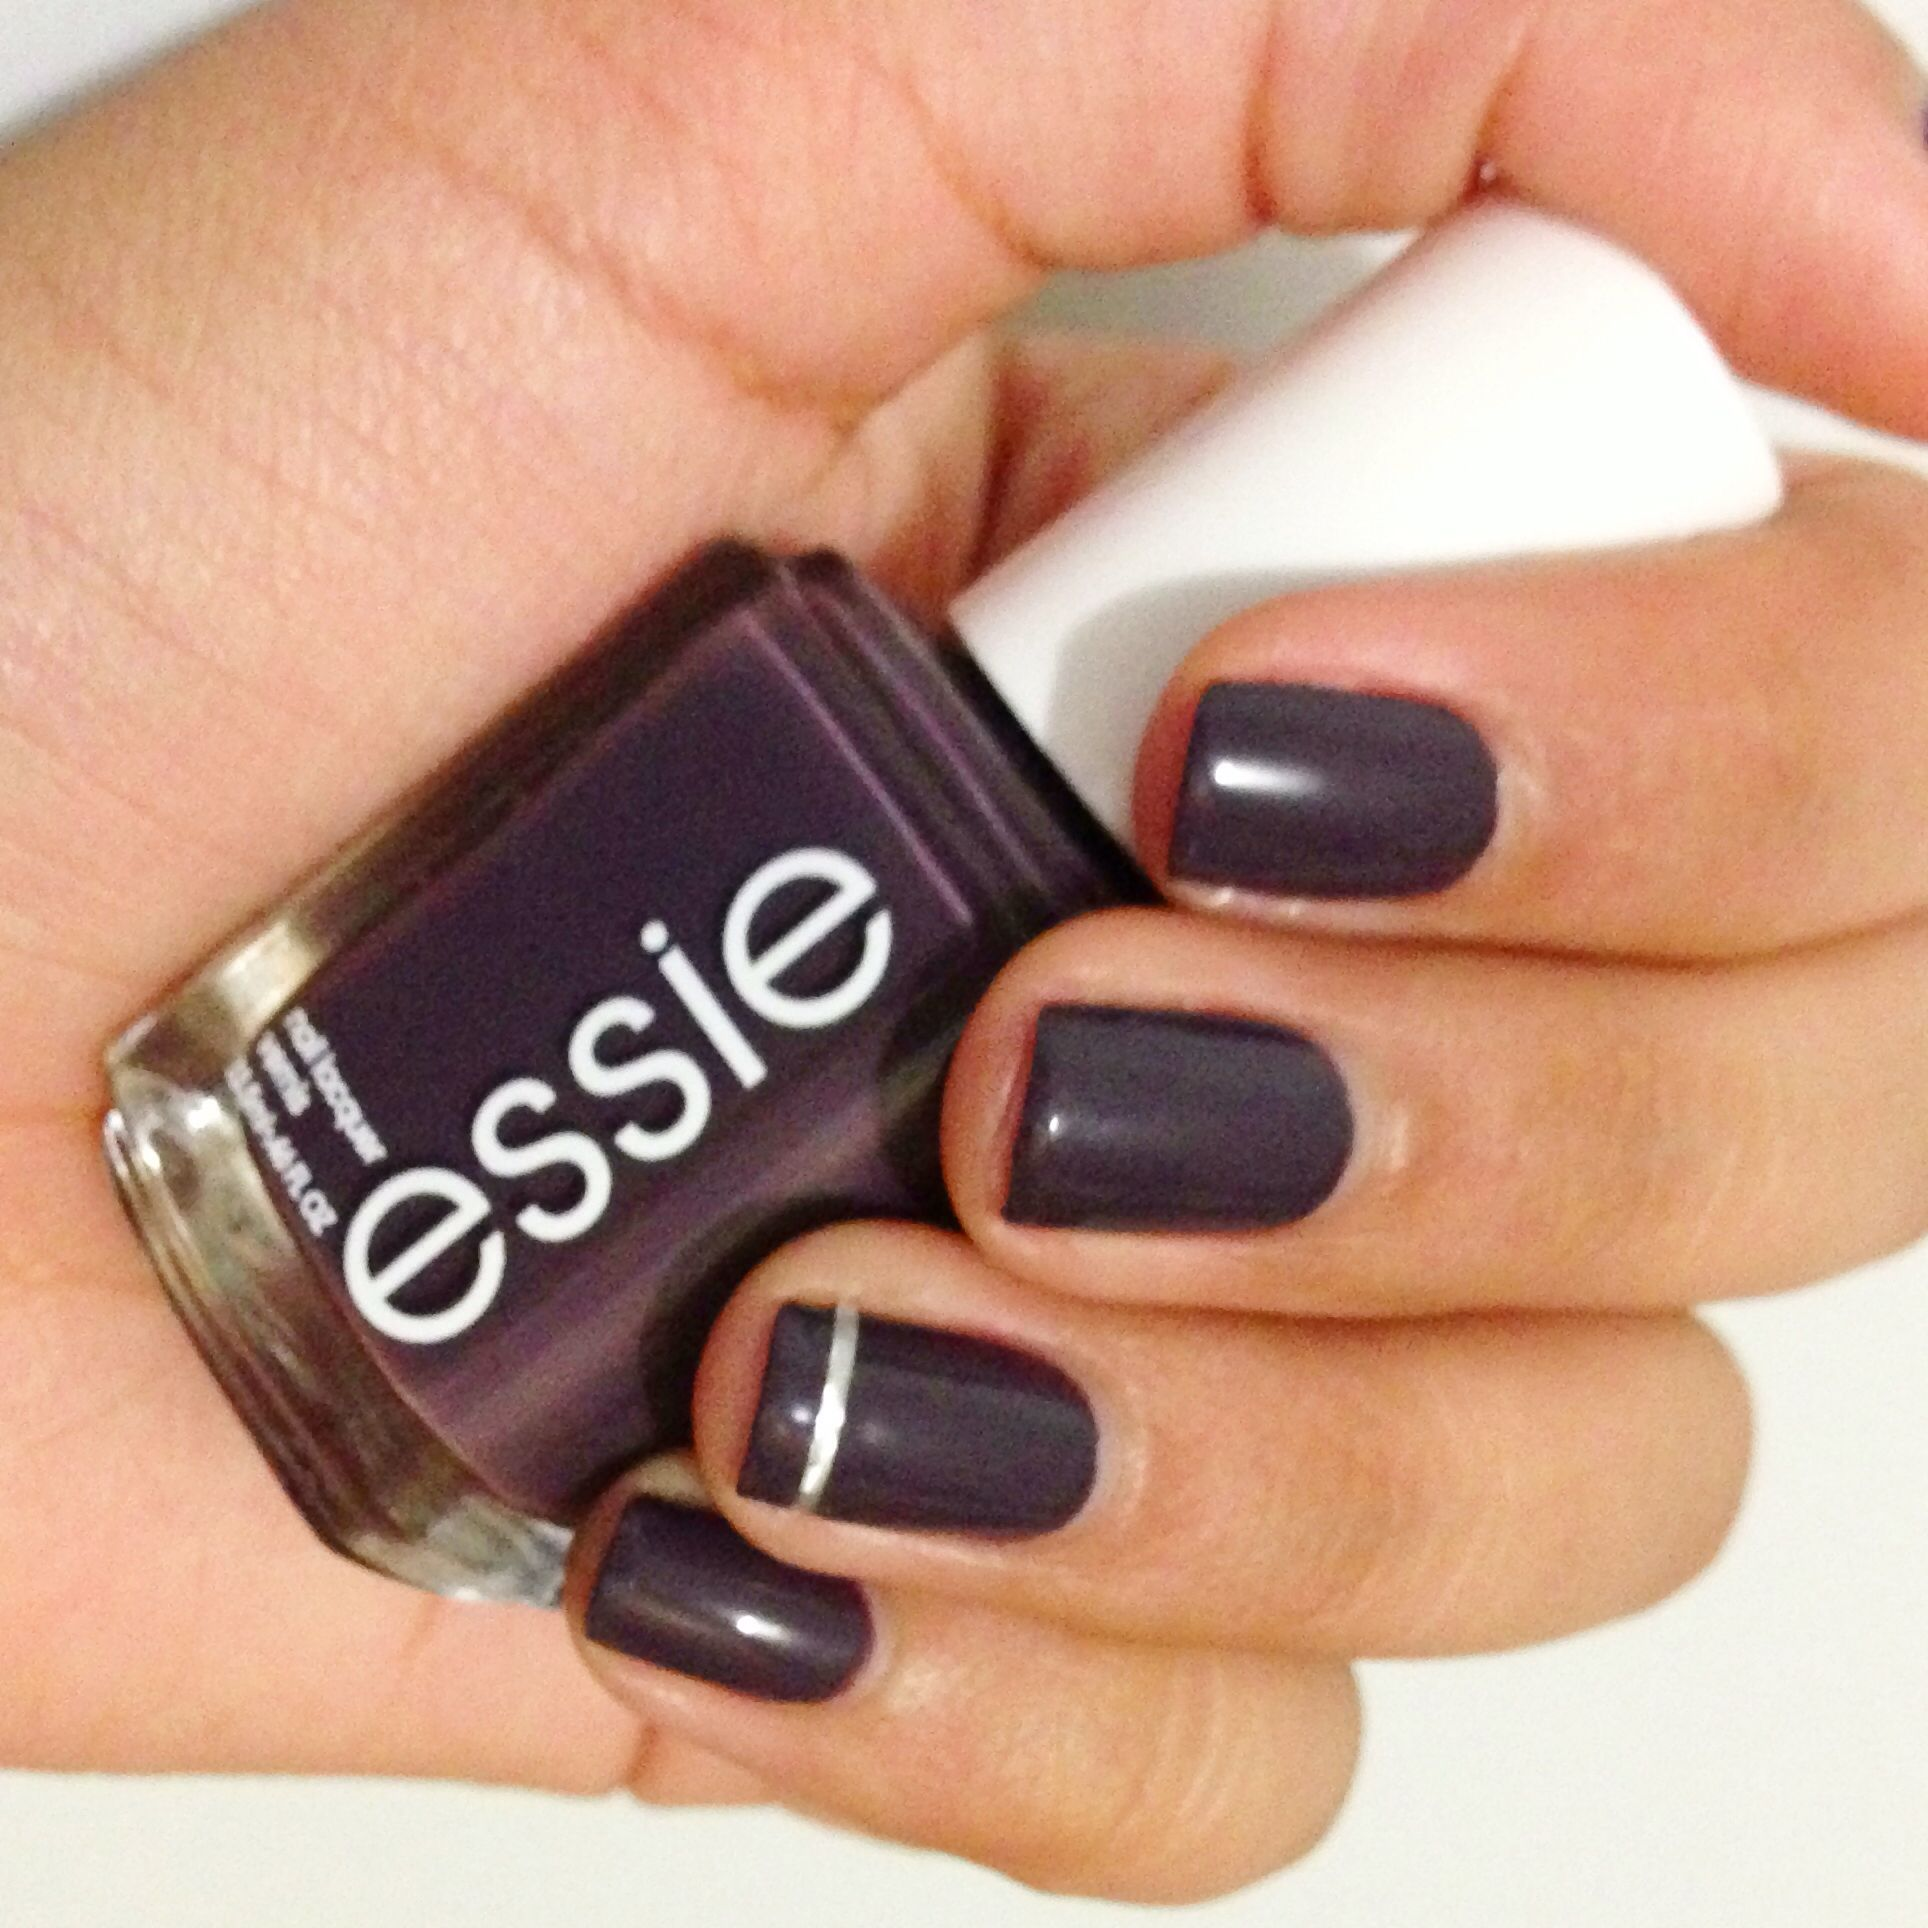 Essie Smokin\' Hot = ESSIE GEL SUPER GOOD 5004......but in deep red ...